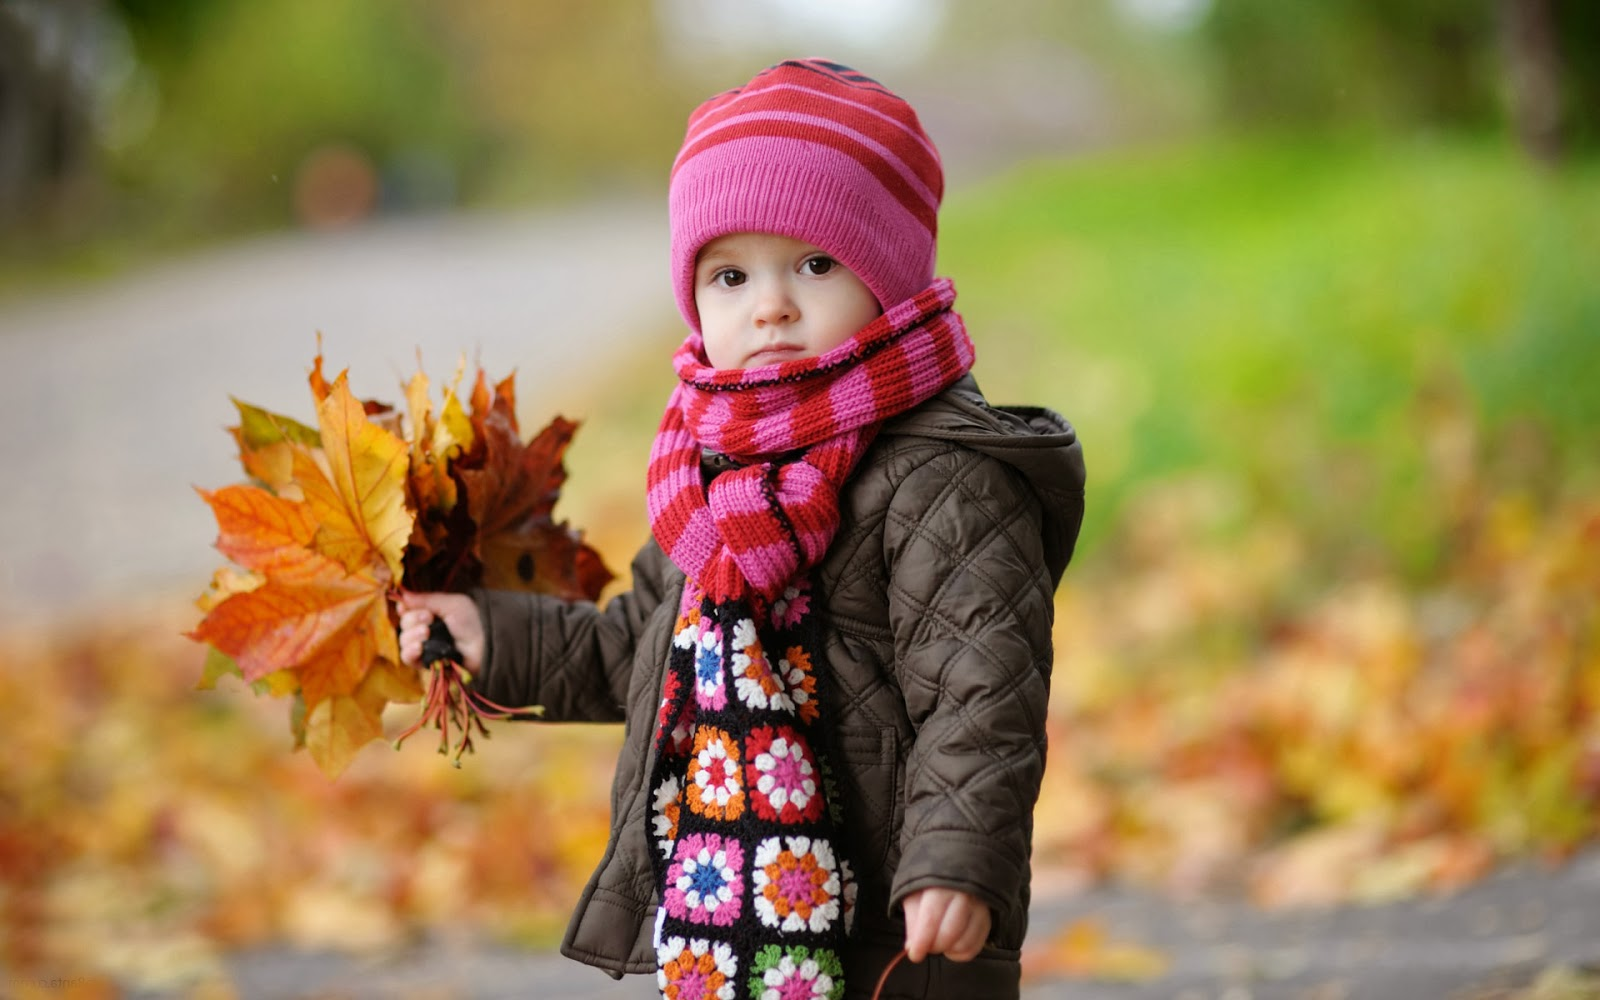 Cute And Sweet Baby Wallpapers Photos And Images Download